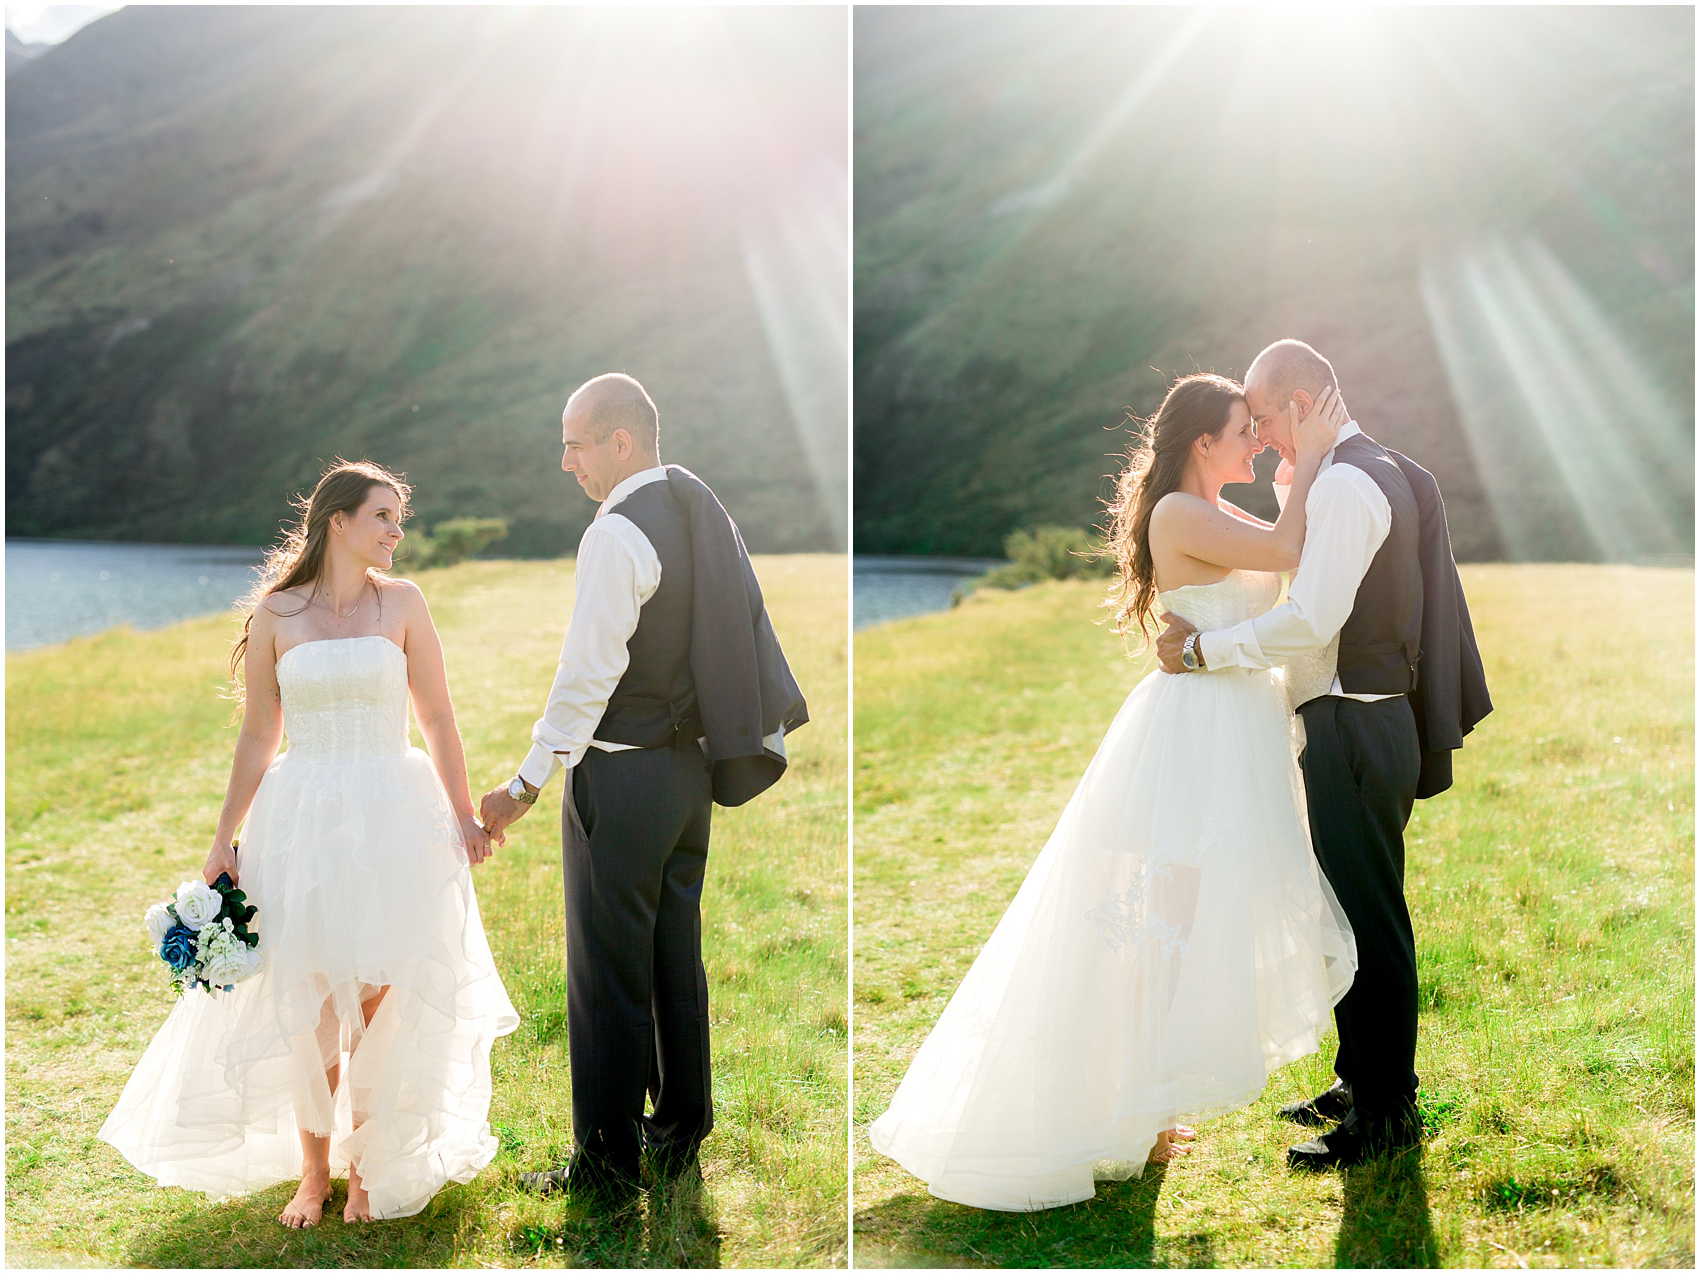 Queenstown New Zealand Wedding Photographer Bruna Fabricio Smetona Photo-0059.jpg